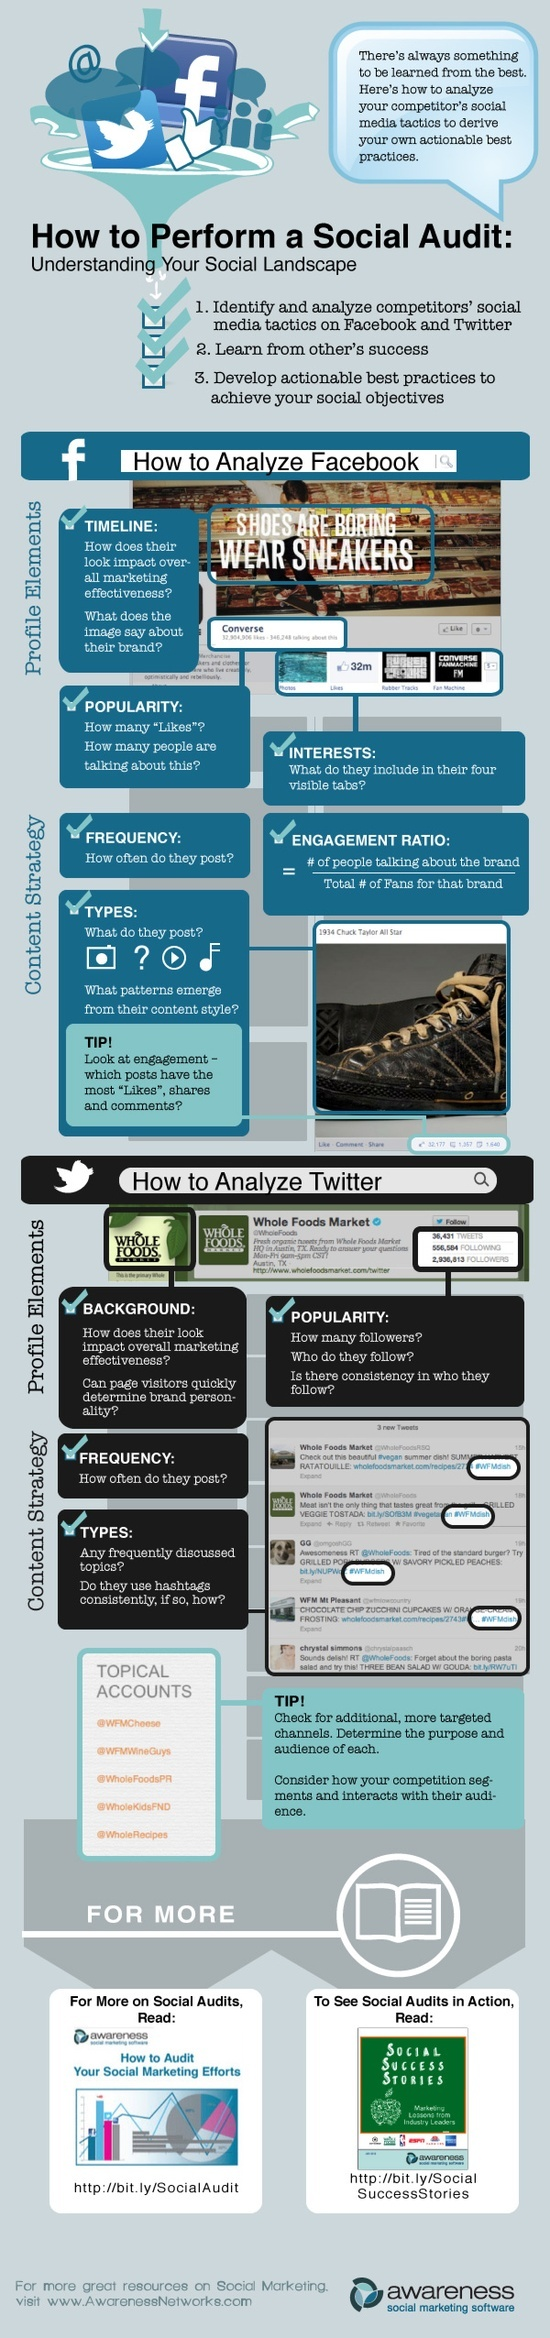 How to perform a social audit - infographic. You should do one on yourself (personal brand), your biz and your competitors.